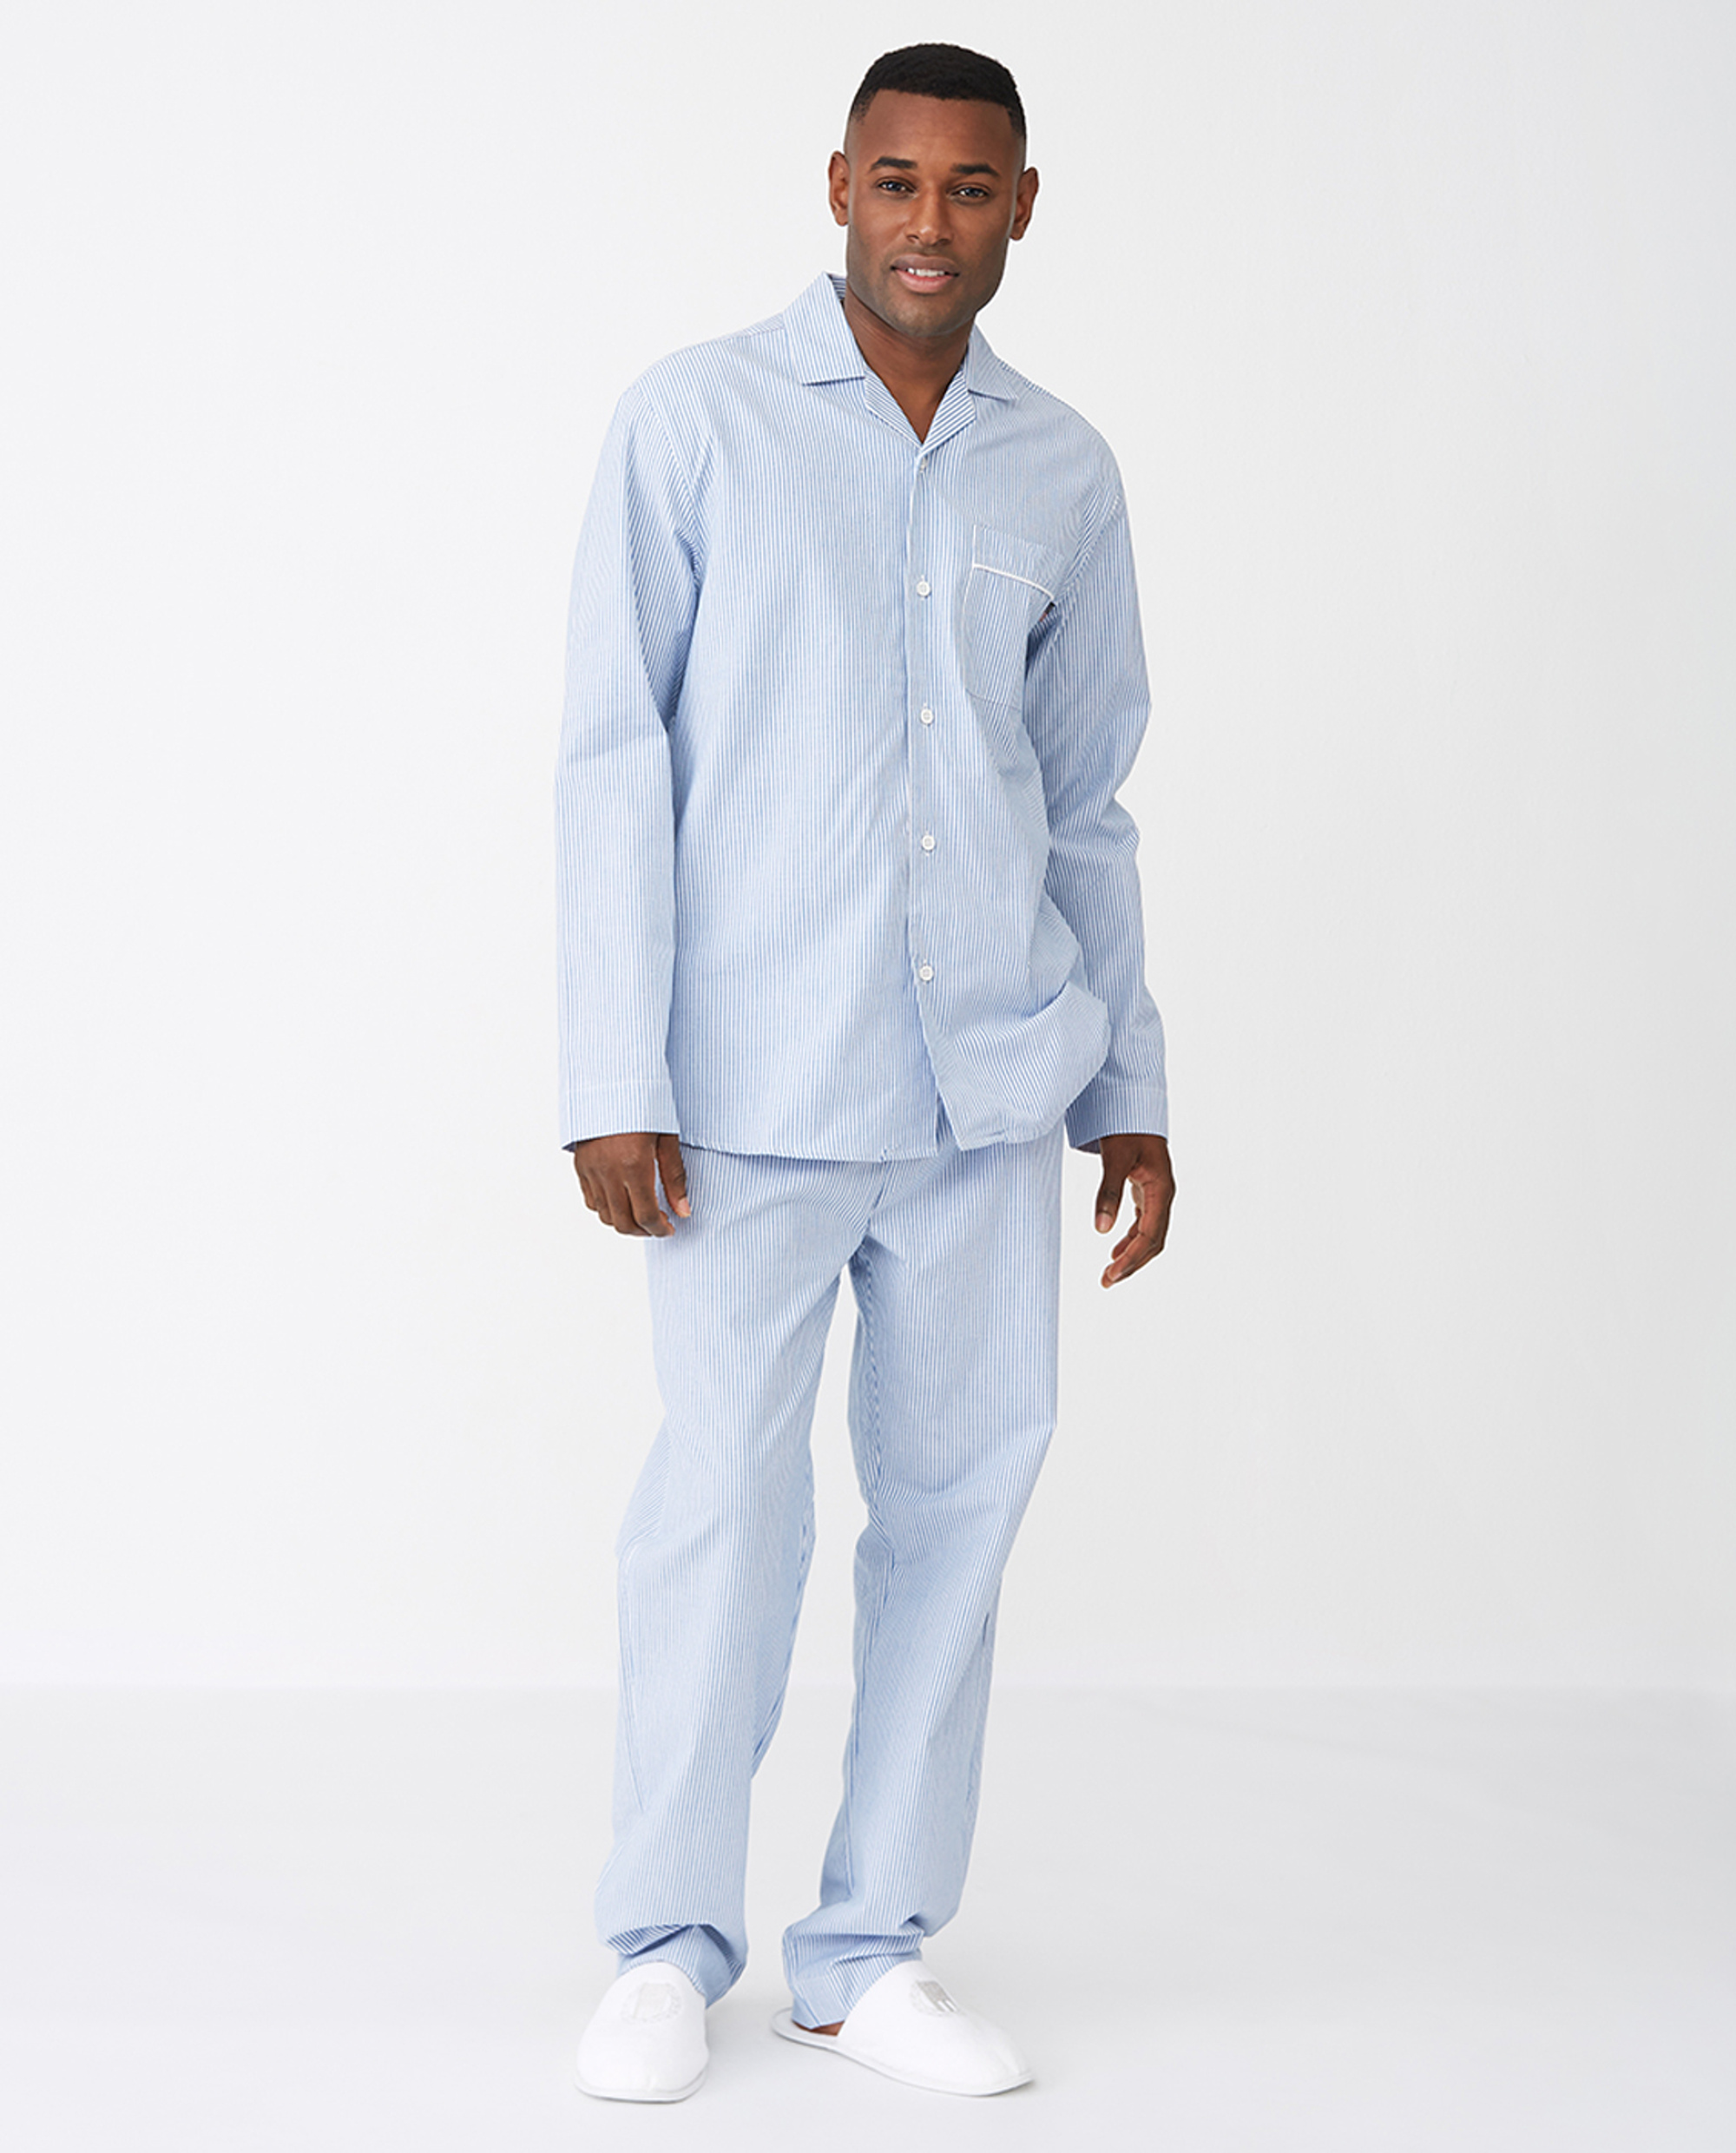 Unisex Organic Cotton Pajama Set, Blue/White